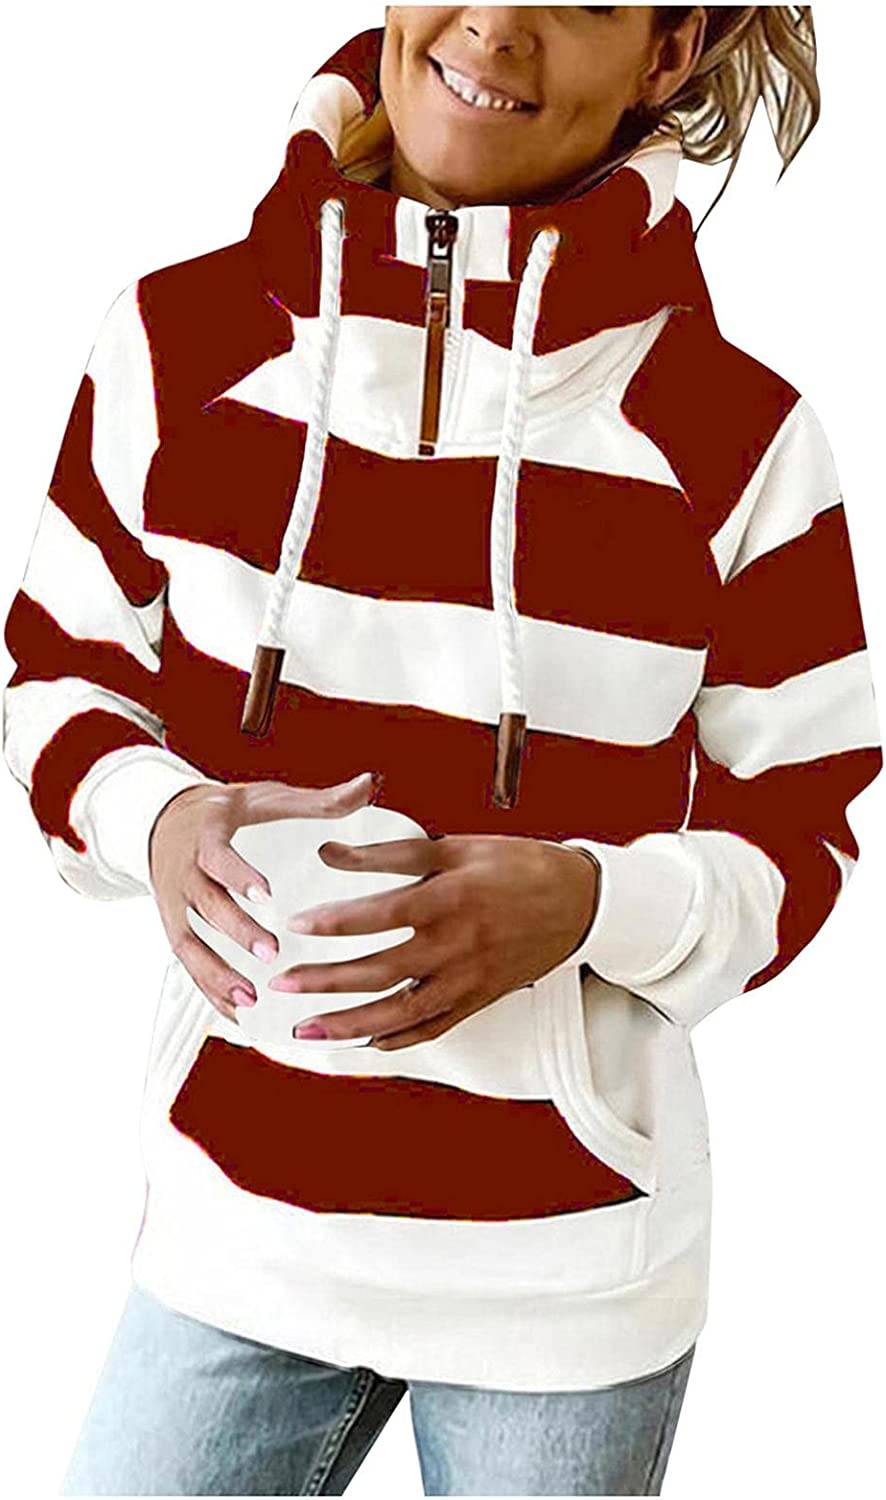 AODONG Hooded Sweatshirts for Women Casual Lightweight Loose 1/4 Zipper Long Sleeve Striped Hoodies Pullover with Pocket